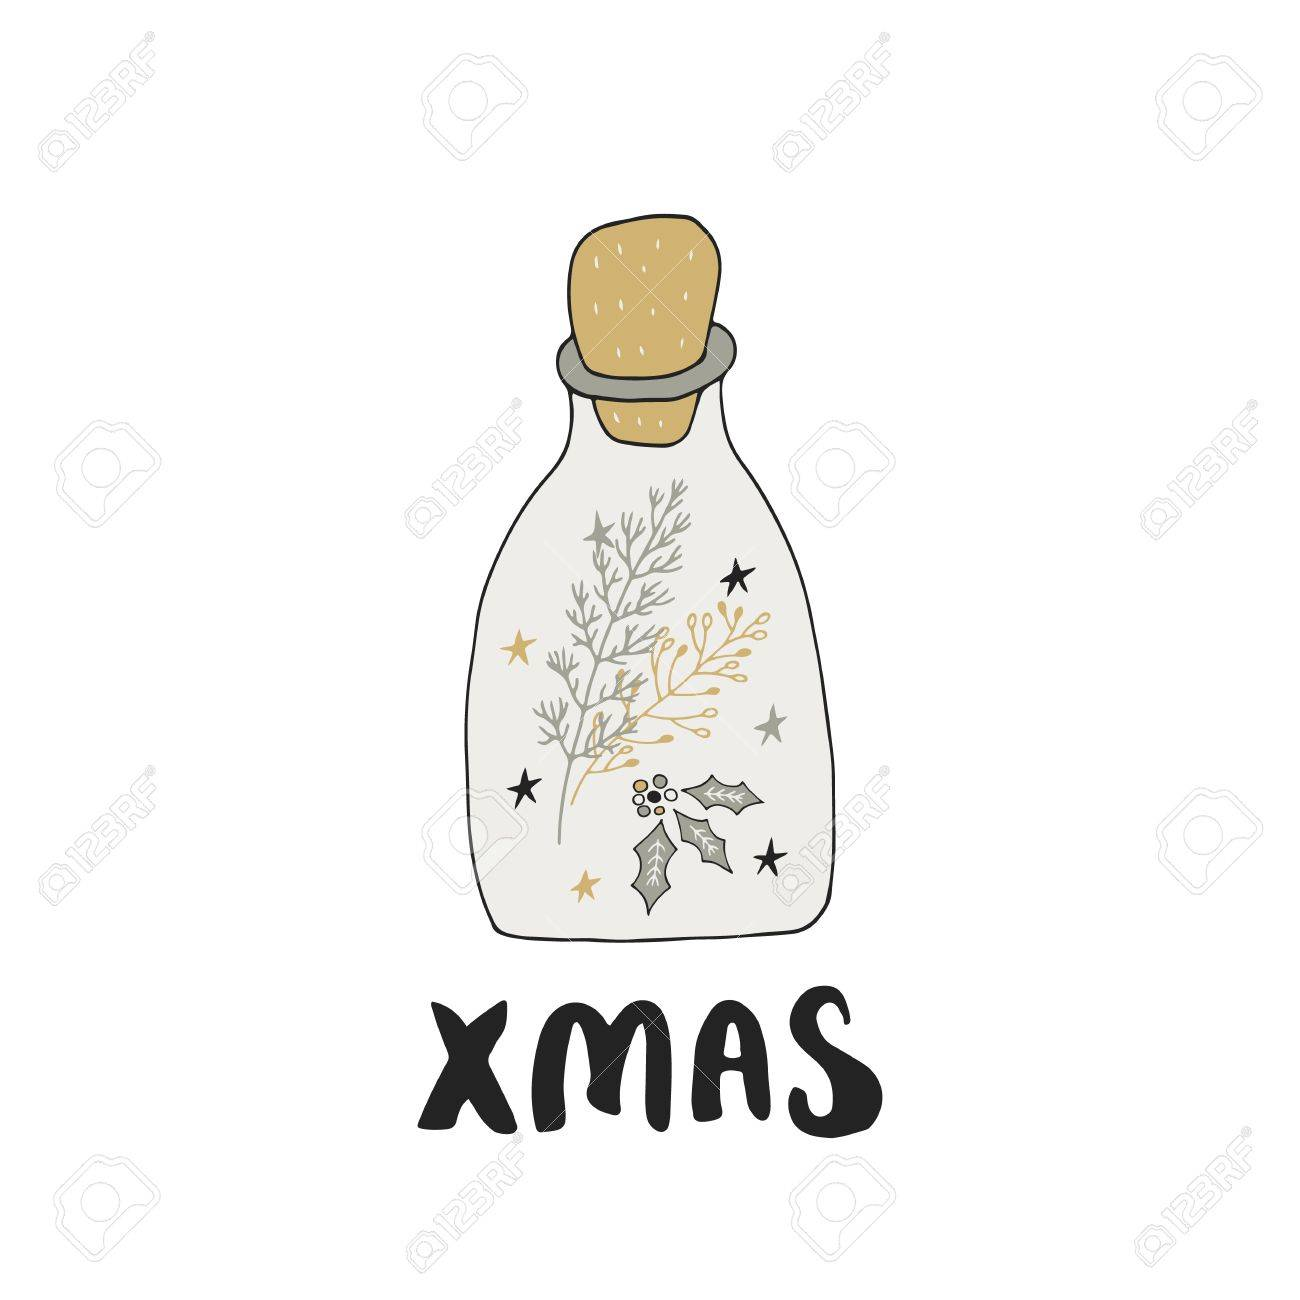 merry christmas hand drawn christmas lettering with xmas decoration cute new year clip art